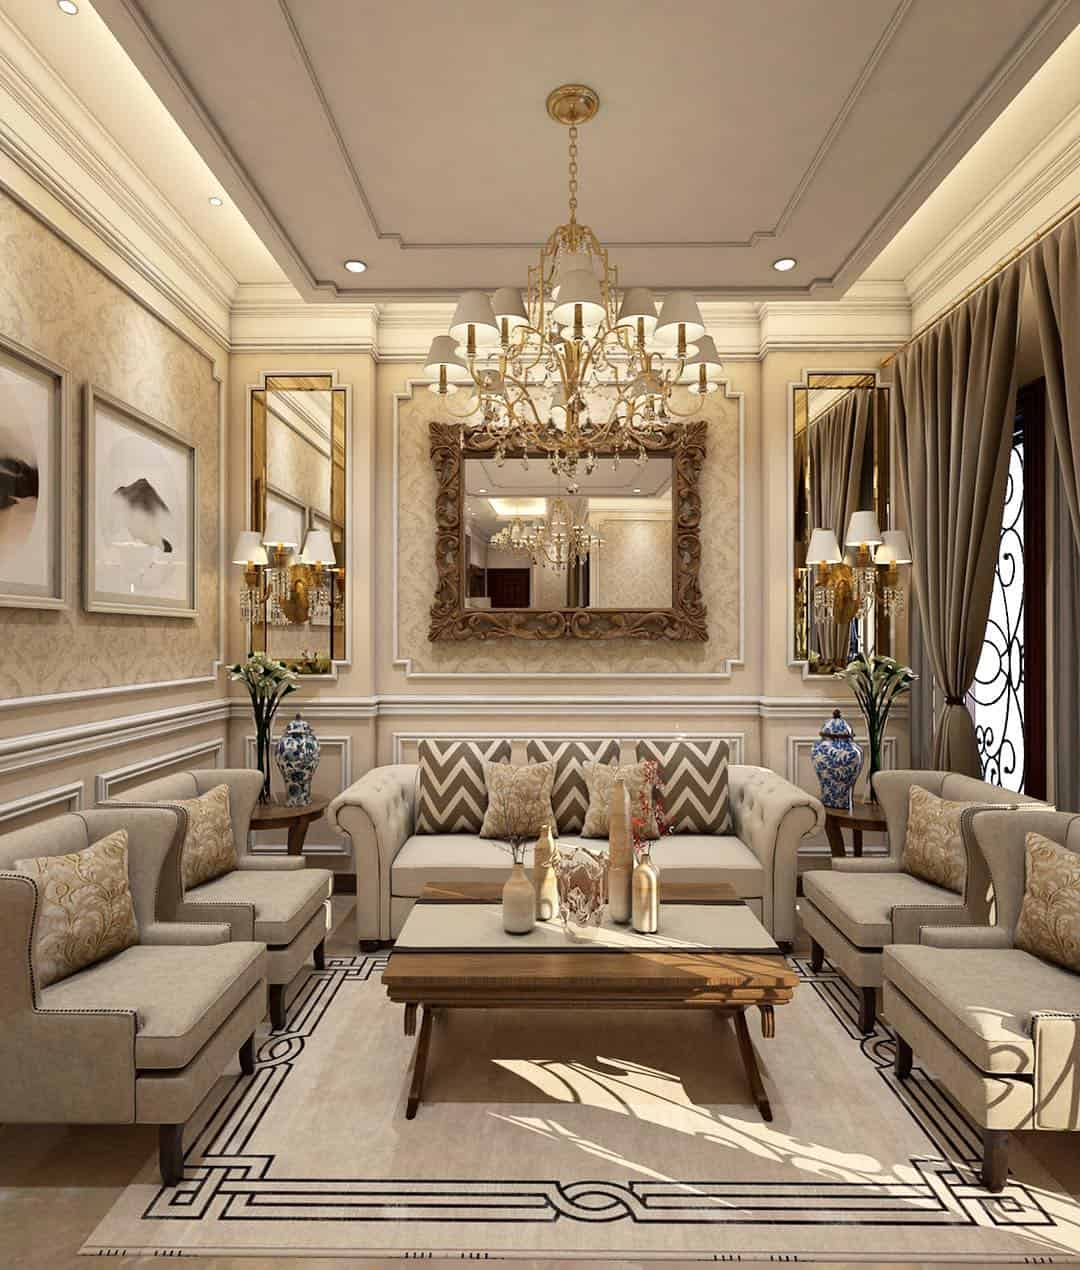 Living room design 2020: Trends and interesting ideas for stylish design